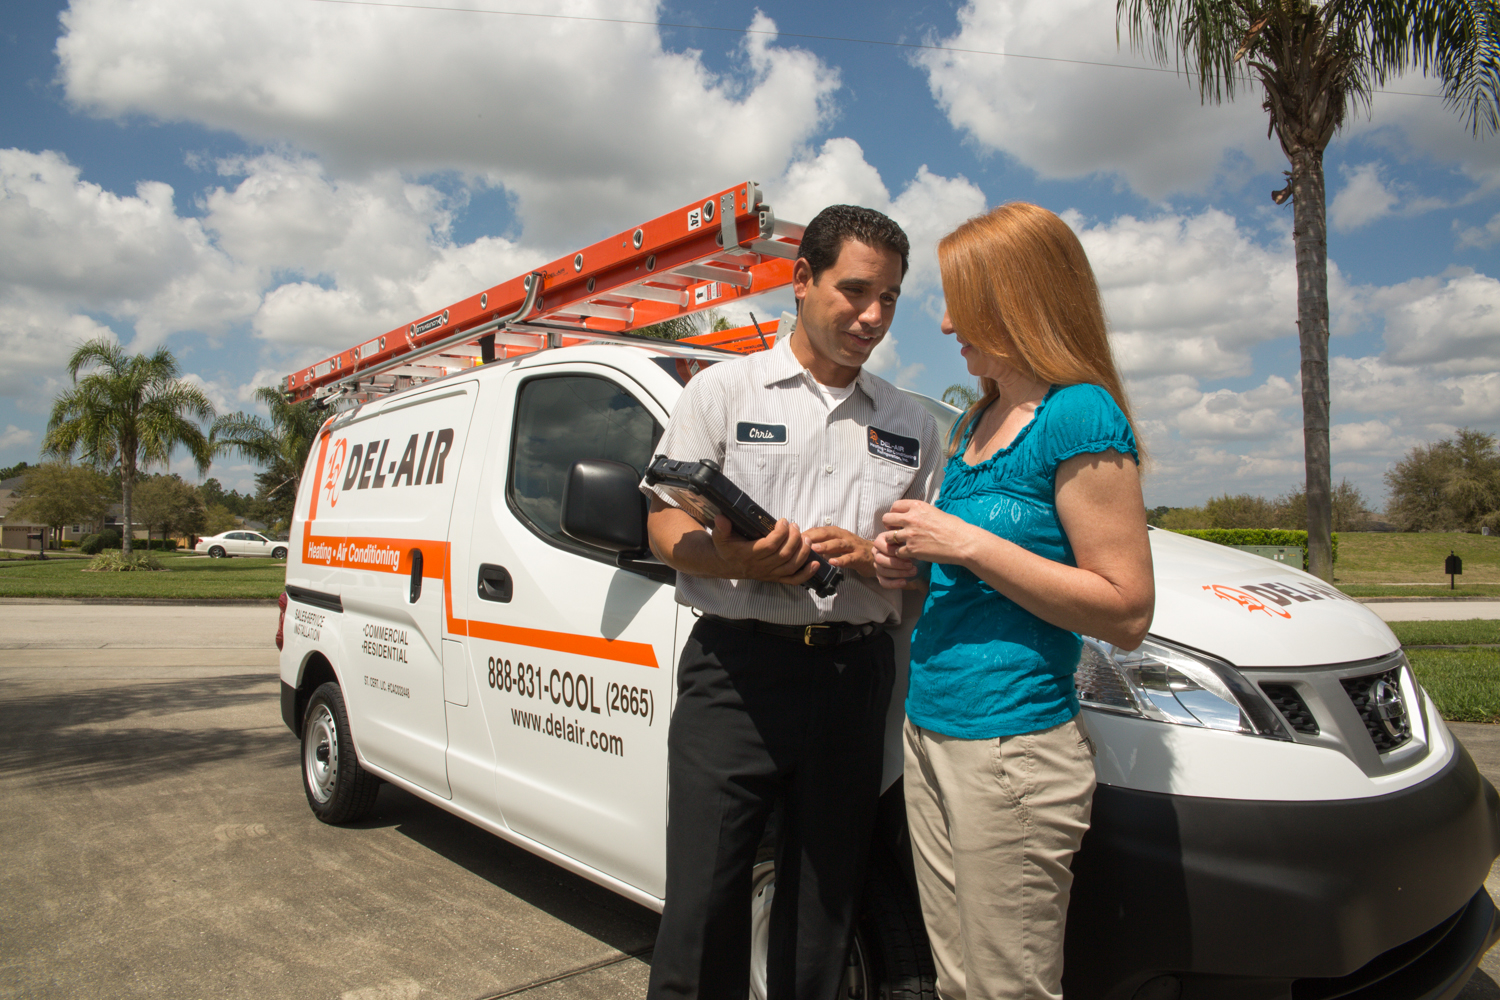 Air conditioning unit service: Del air kissimmee